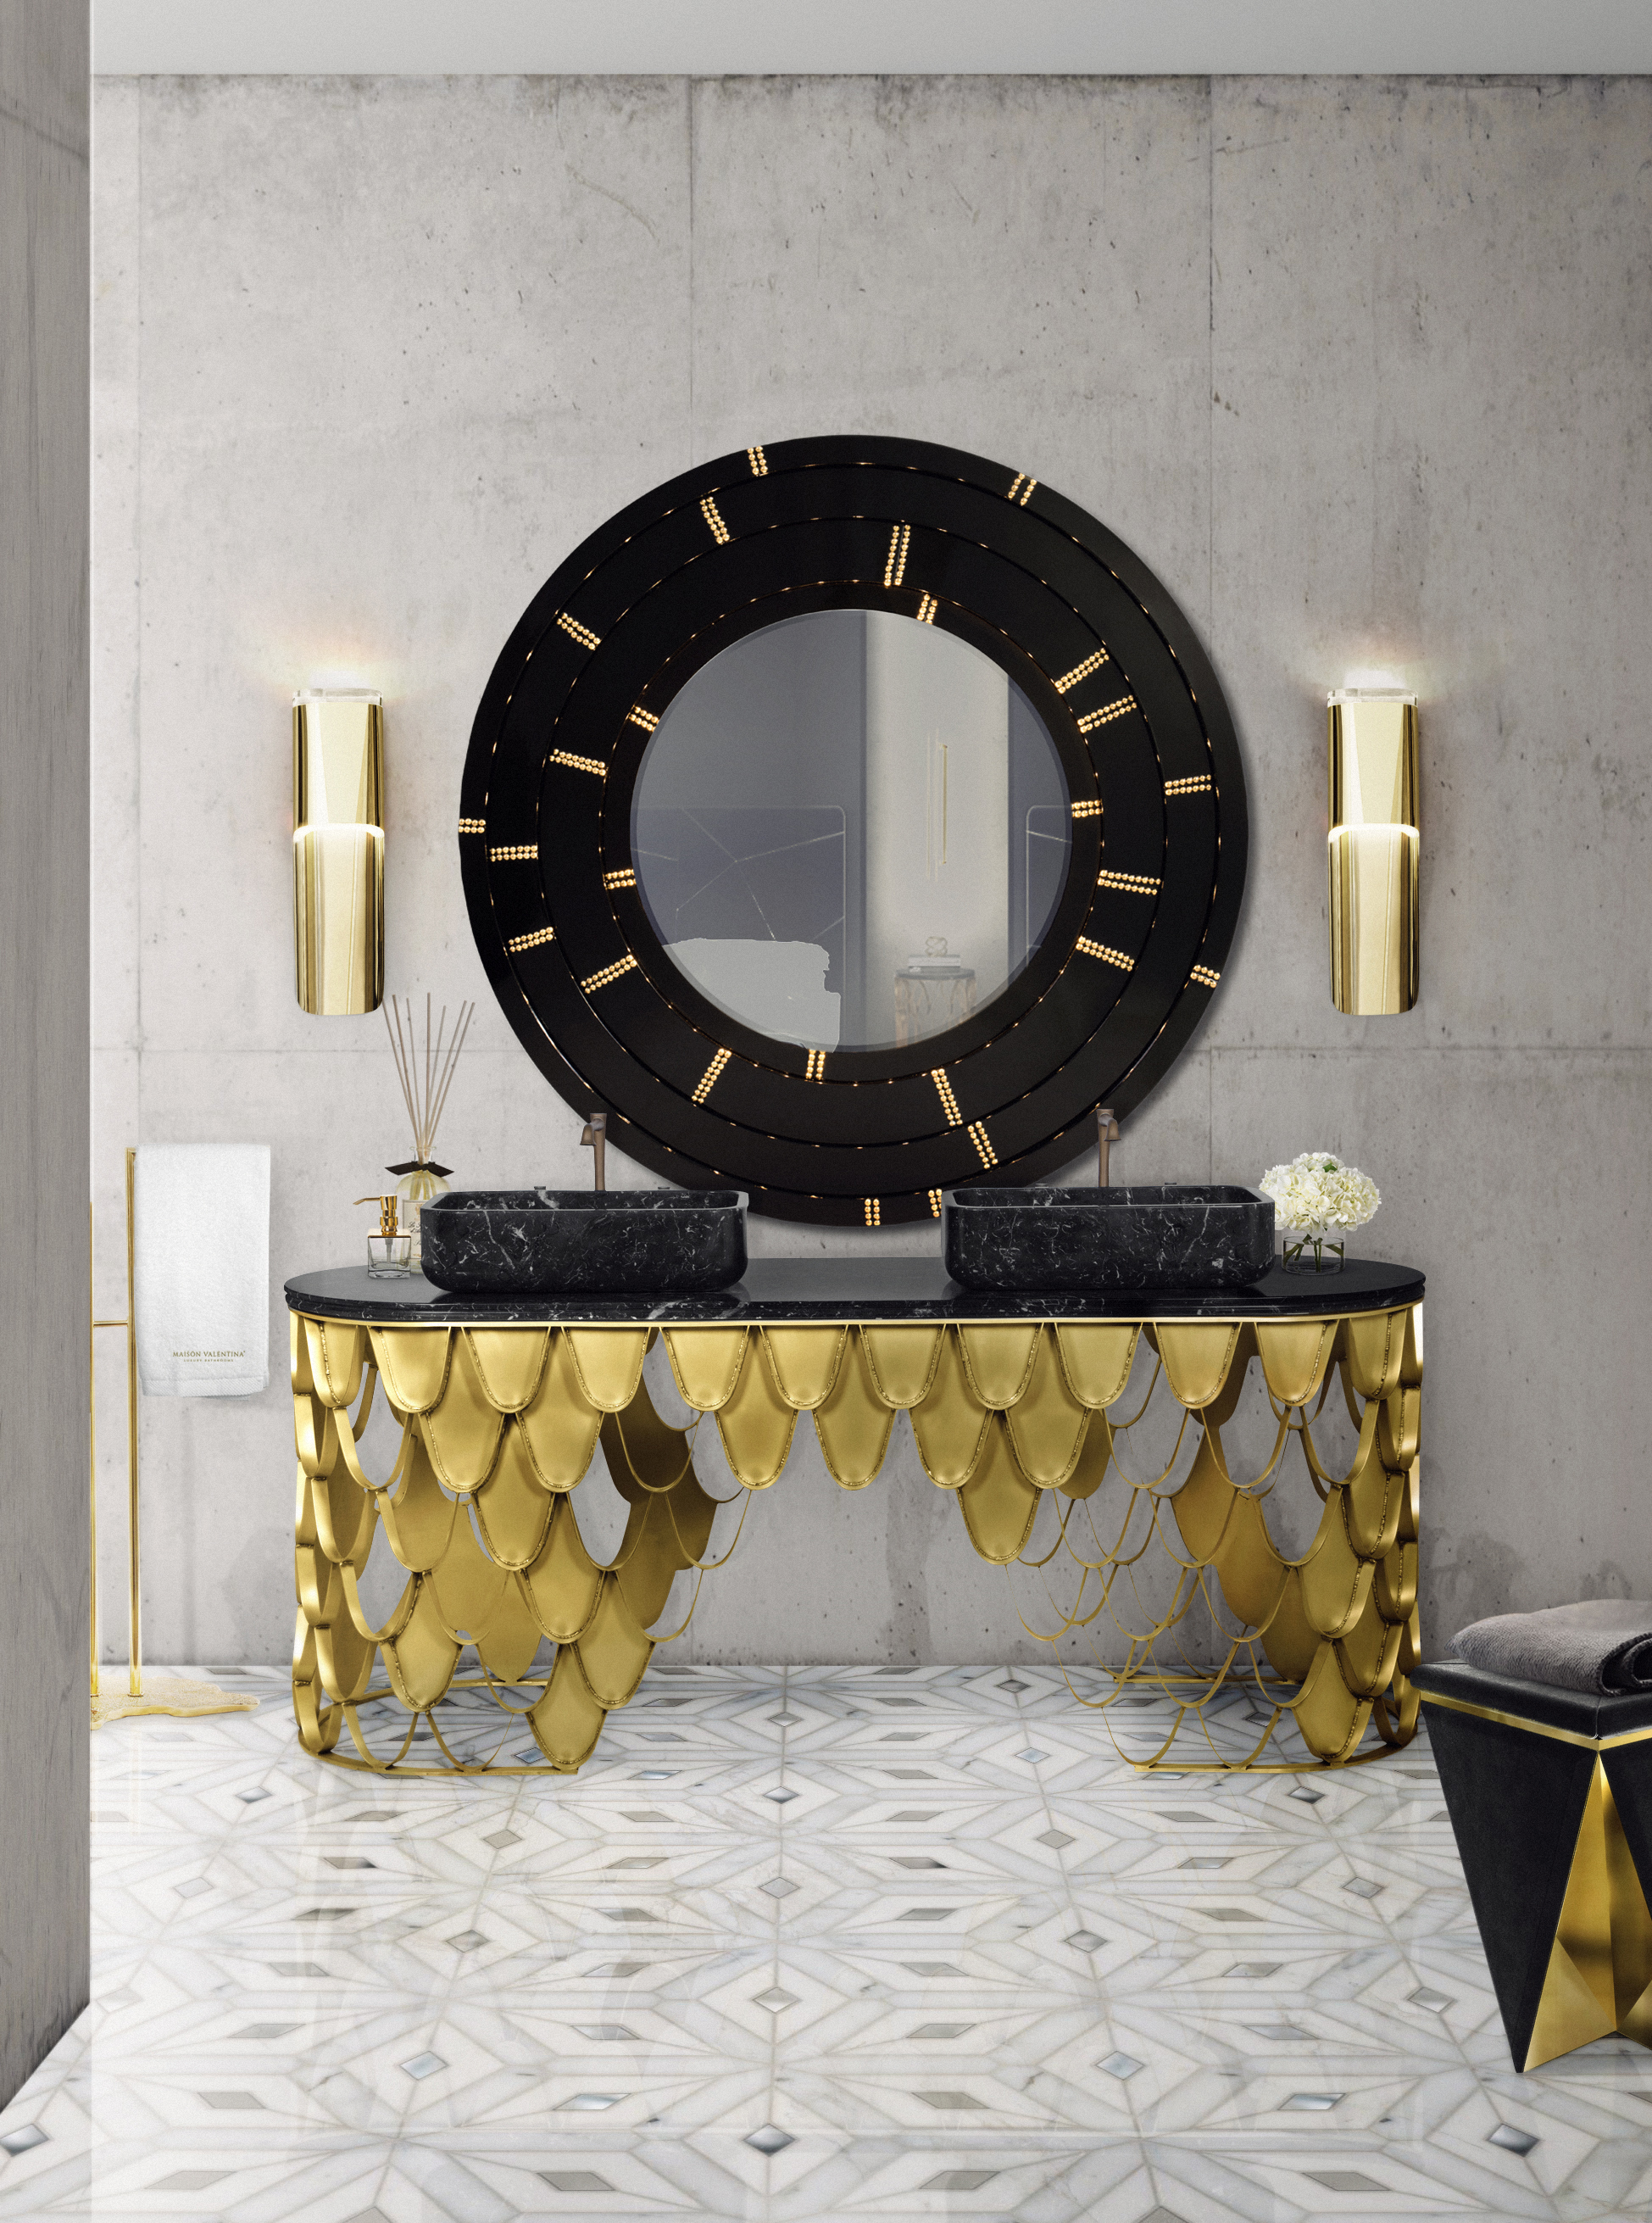 wall mirror,wall mirror ideas, inspiration, design inspiration, mirror wall mirror ideas 9 Wall Mirror Ideas That Will Give a Unique Look to Your Room 29 koi washbasin blaze mirror eden towel rack HR